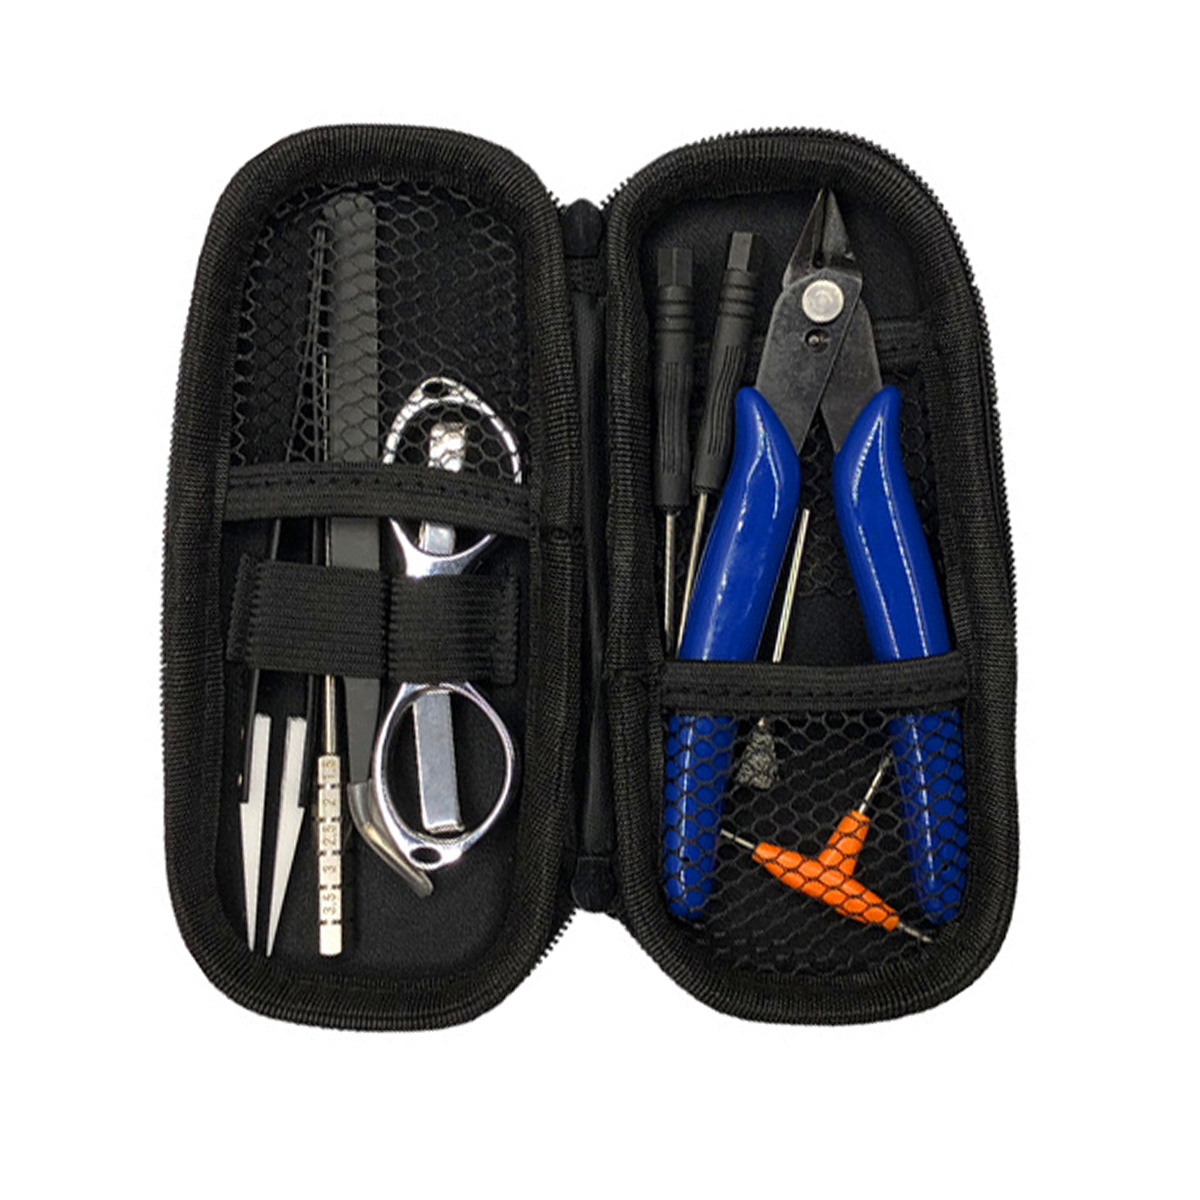 Mini Vape DIY Tool Bag Tweezers Pliers Kit Coil Jig Winding For Packing Electronic Cigarette Accessories